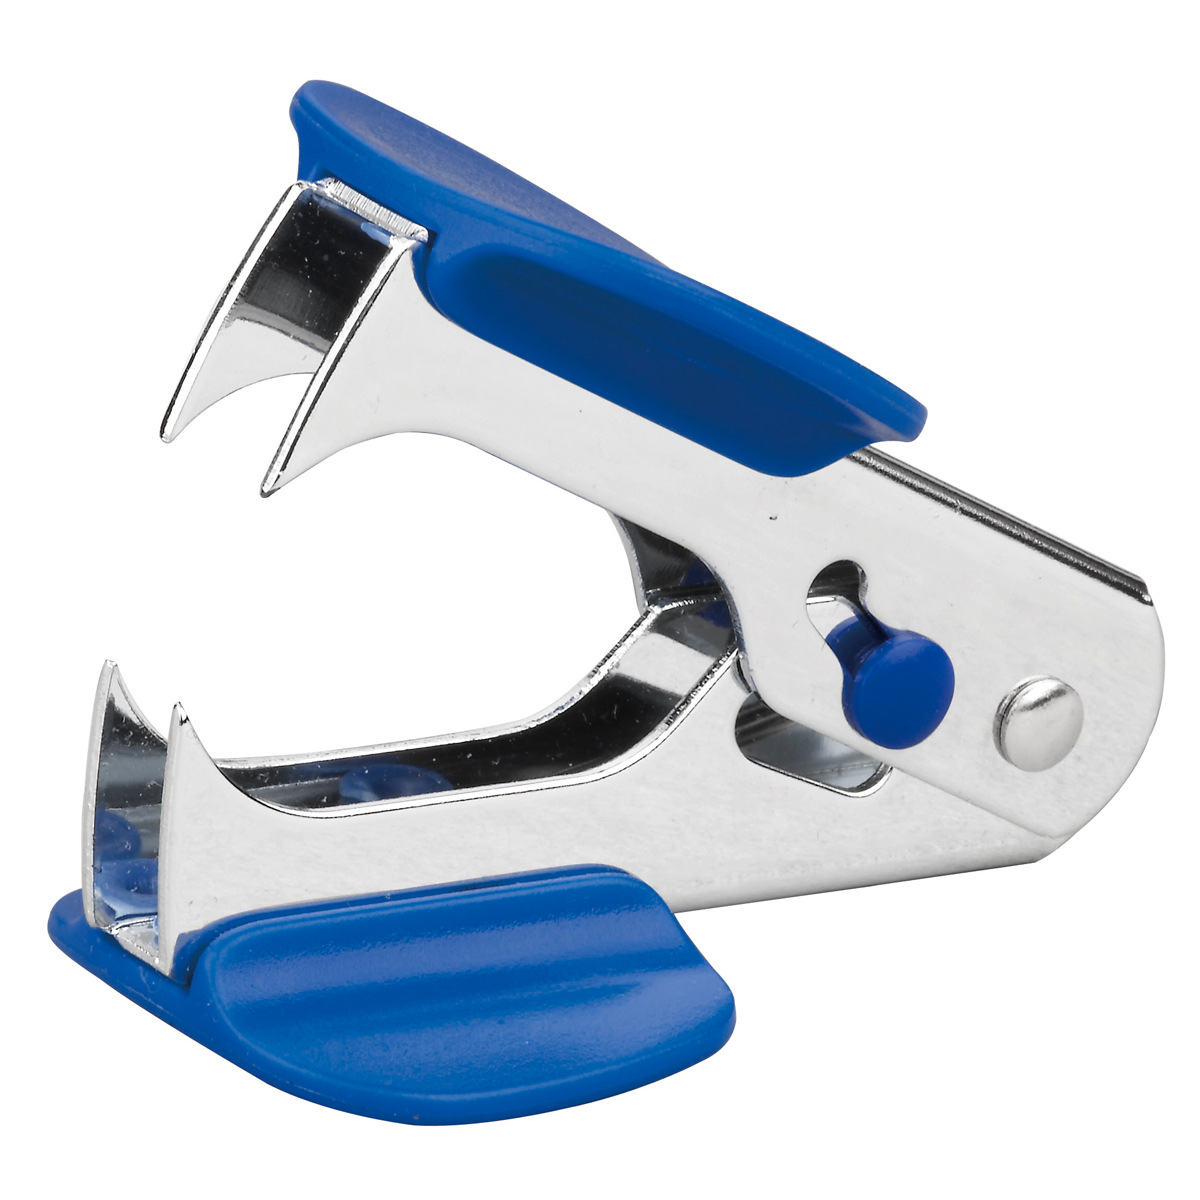 Staple Remover Stationery Supplies New Advanced Mini Portable Standard Metal Staple Remover For Office And School